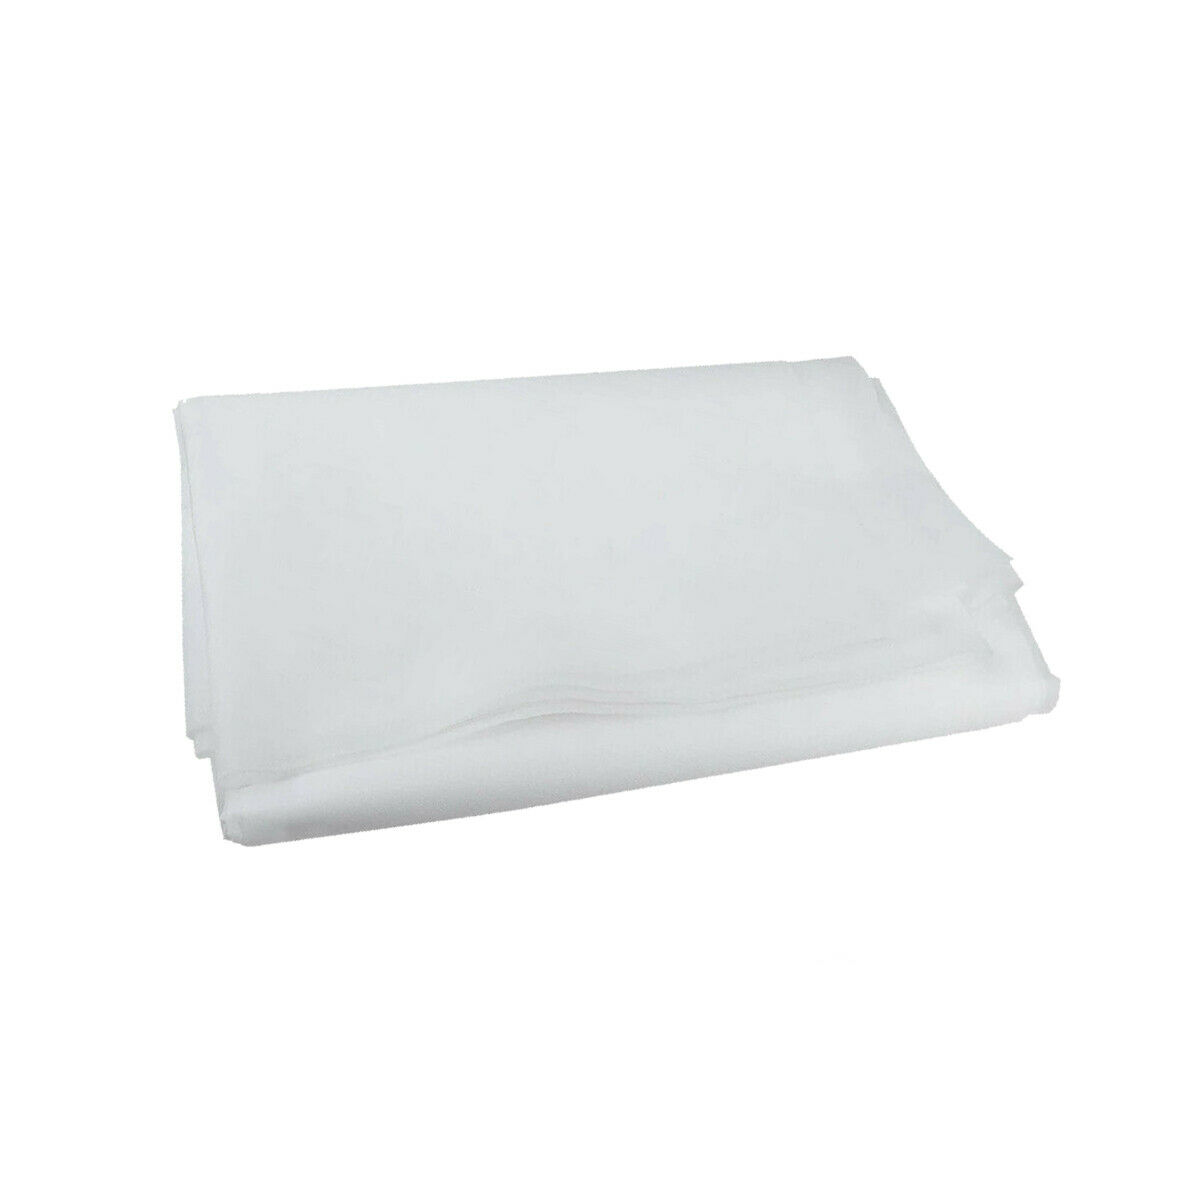 4m x 10m 17gsm Yuzet Frost Protection Fleece Winter Plant Cover Shrubs Crops